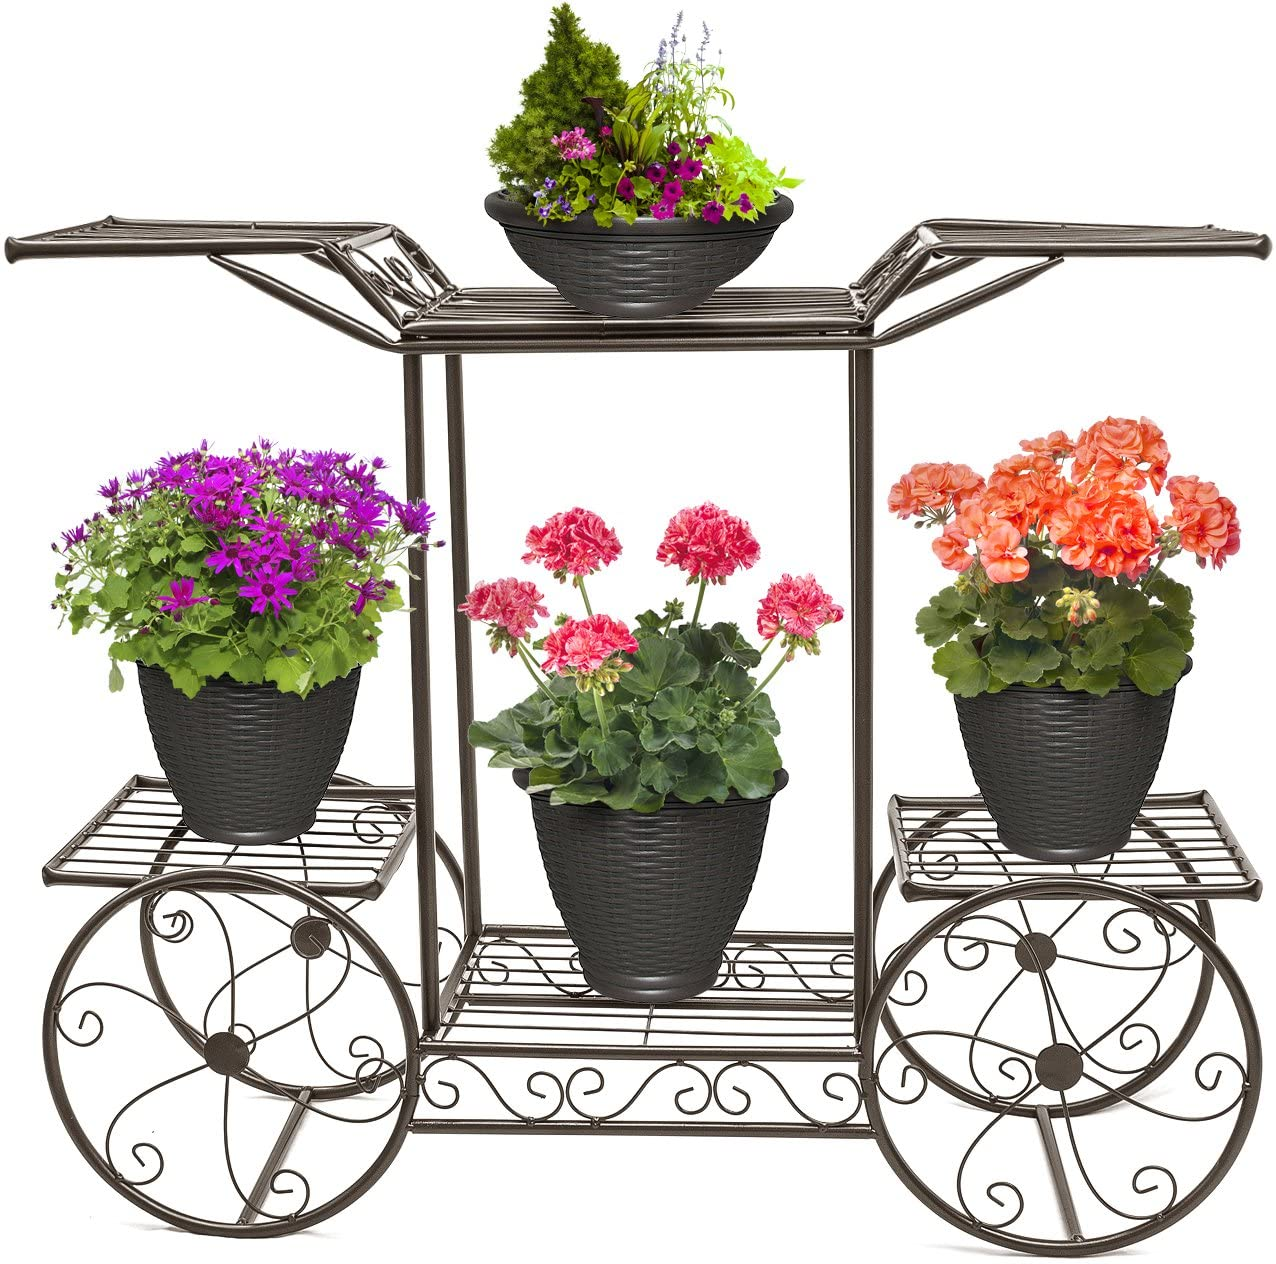 Sorbus-Garden-flower-display 15 Unique Furniture Designs for Outdoor Small Spaces